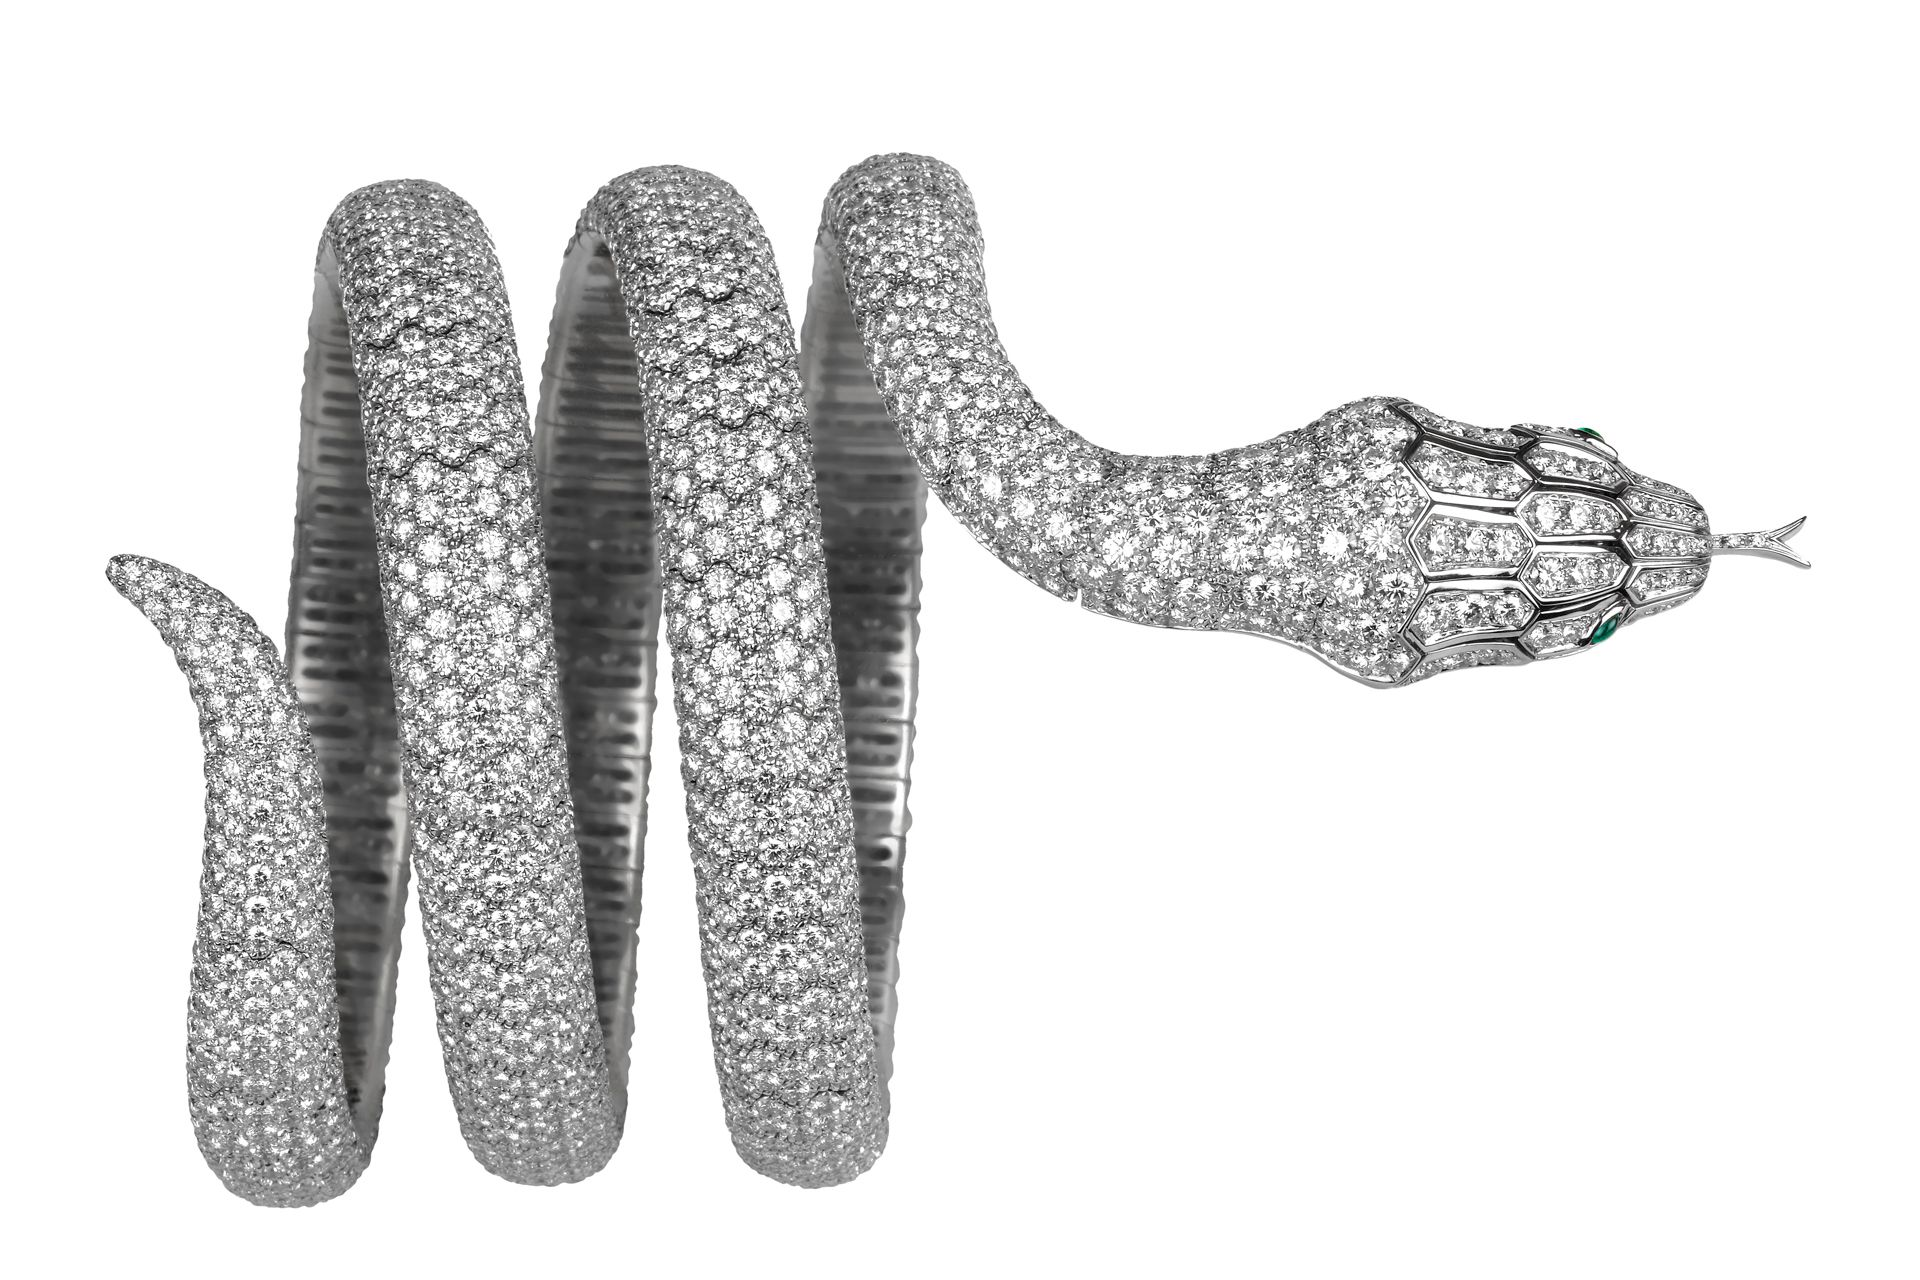 'Collection of Animals' brings new beasts to Boucheron's iconic jewelry menagerie